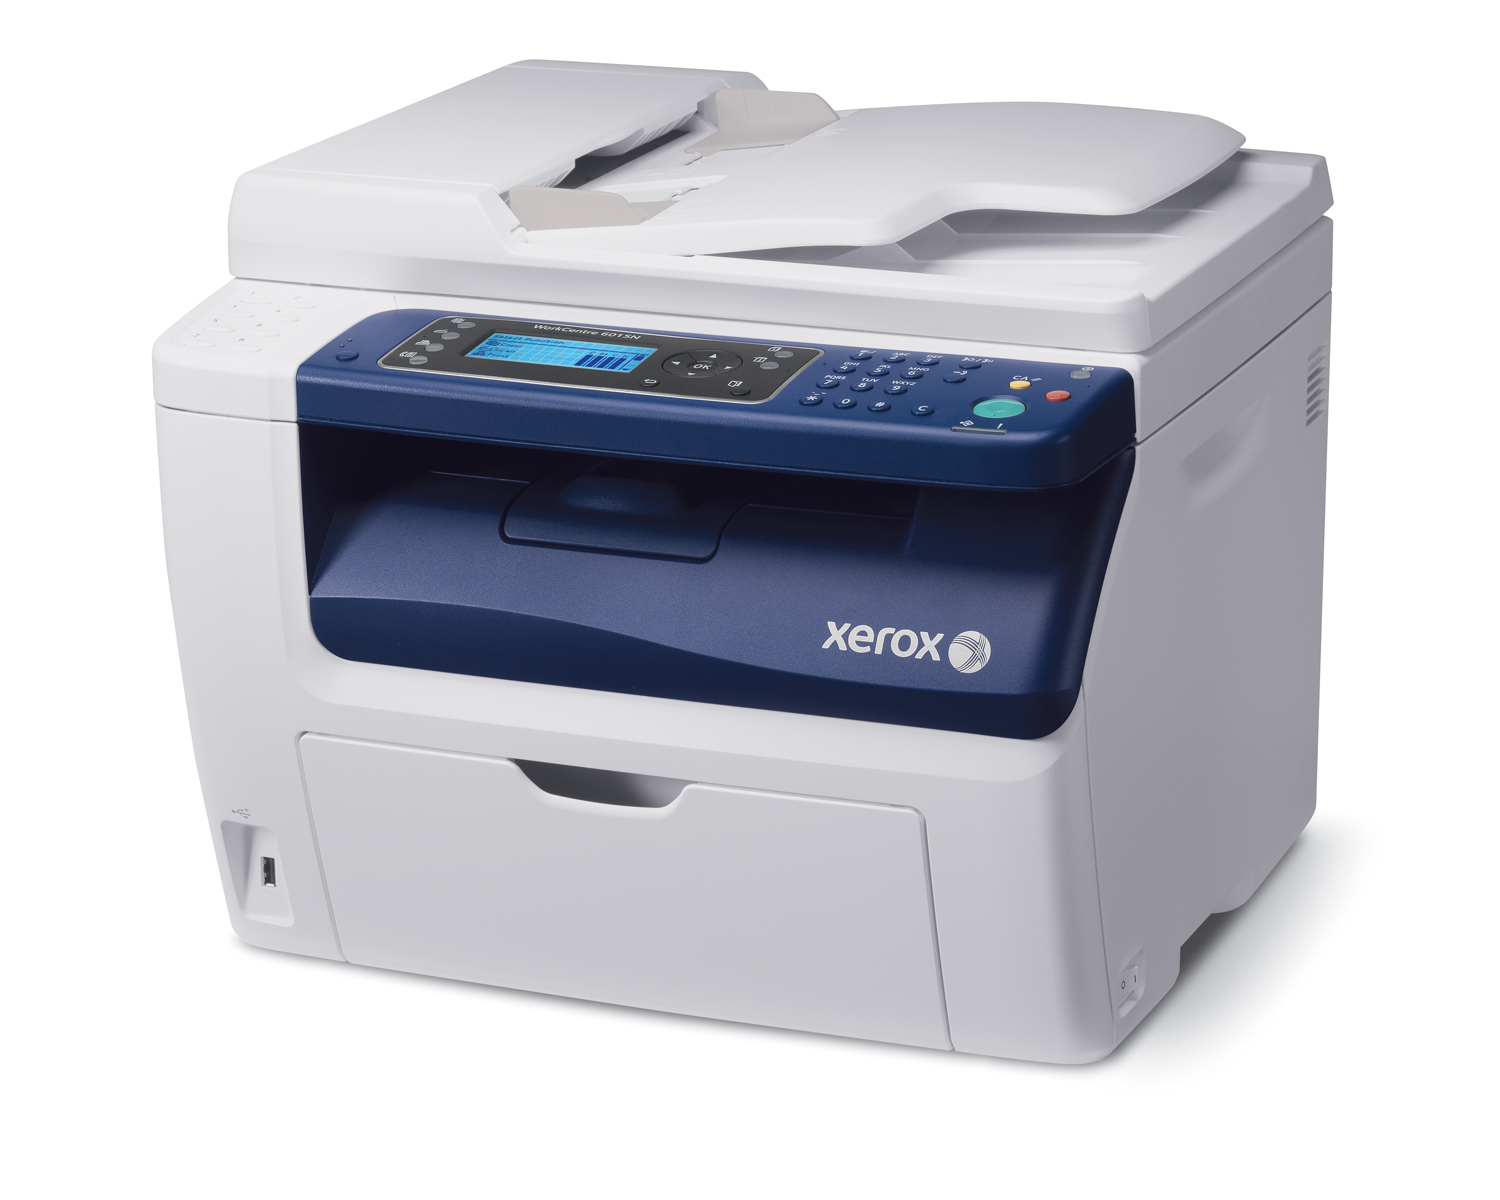 The WorkCentre 6015 color multifunction printer is Xerox's first Wi-Fi enabled device. The desktop MFP combines print, copy, scan, fax and digital workflow capabilities into a compact design to maximize office space and convenience.